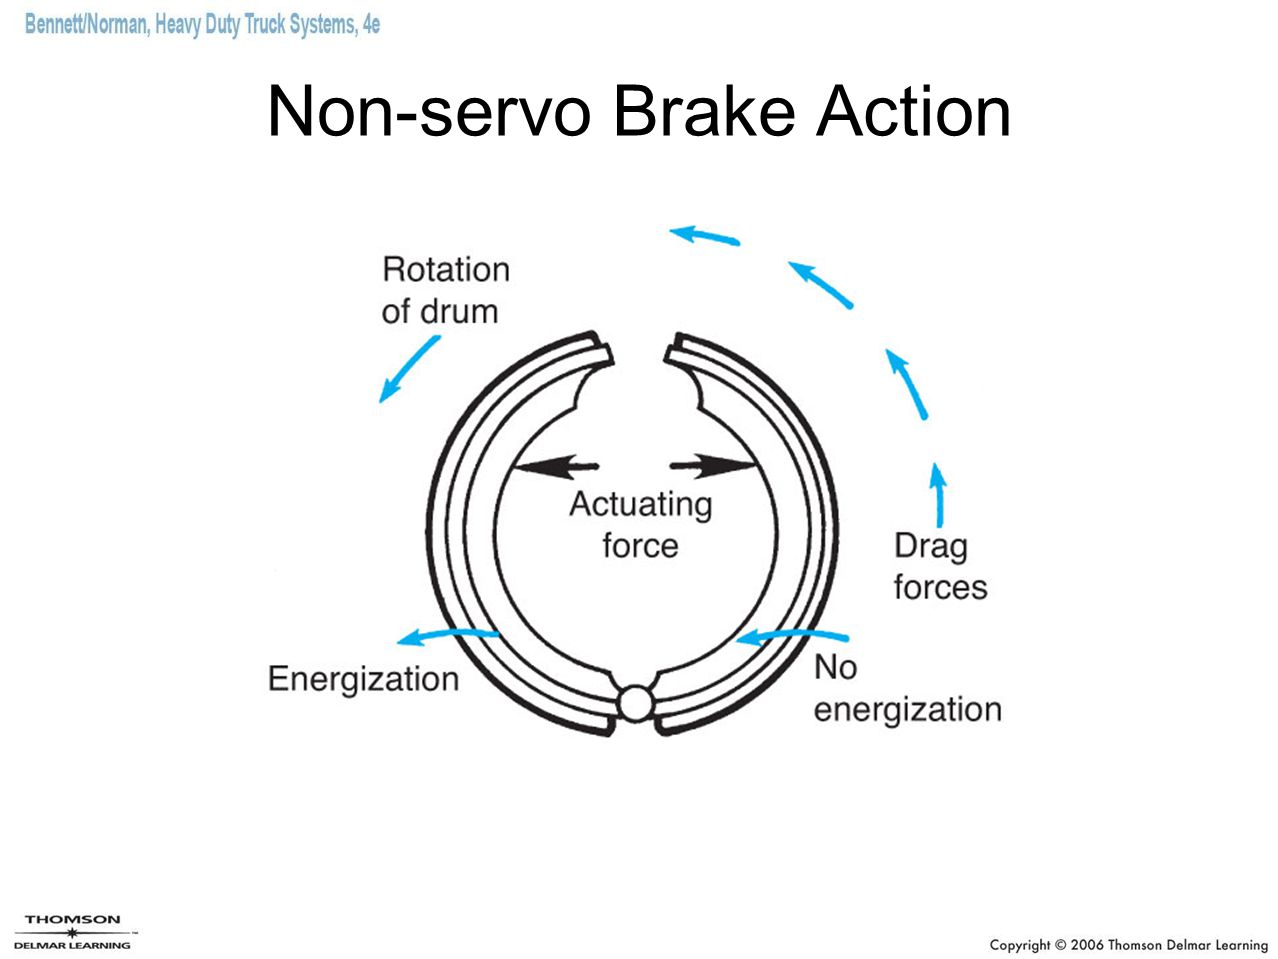 Non-servo Brake Action